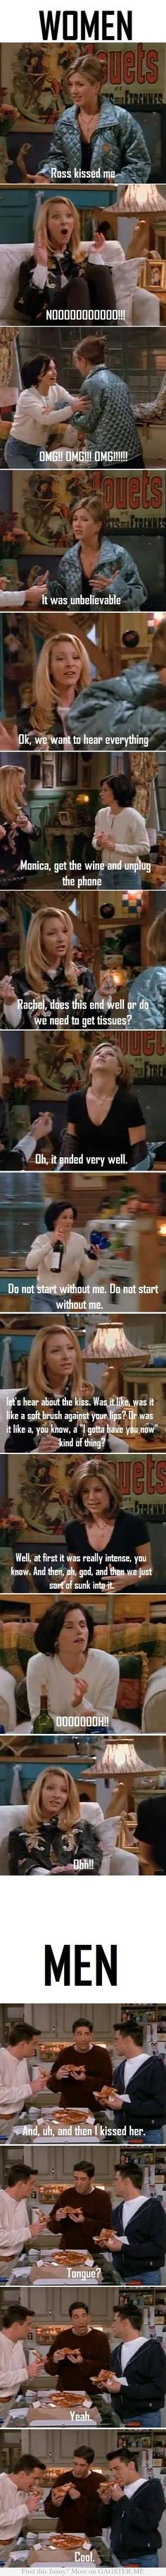 Funny Scene From The Show Friends funny tv friends tv shows lol comedy humor… Tv: Friends, Friends Tv Show, Friends Moments, I Love My Friends, Funny Friends, Rachel Friends, Friends Episodes, Friend Memes, Laughter Friends